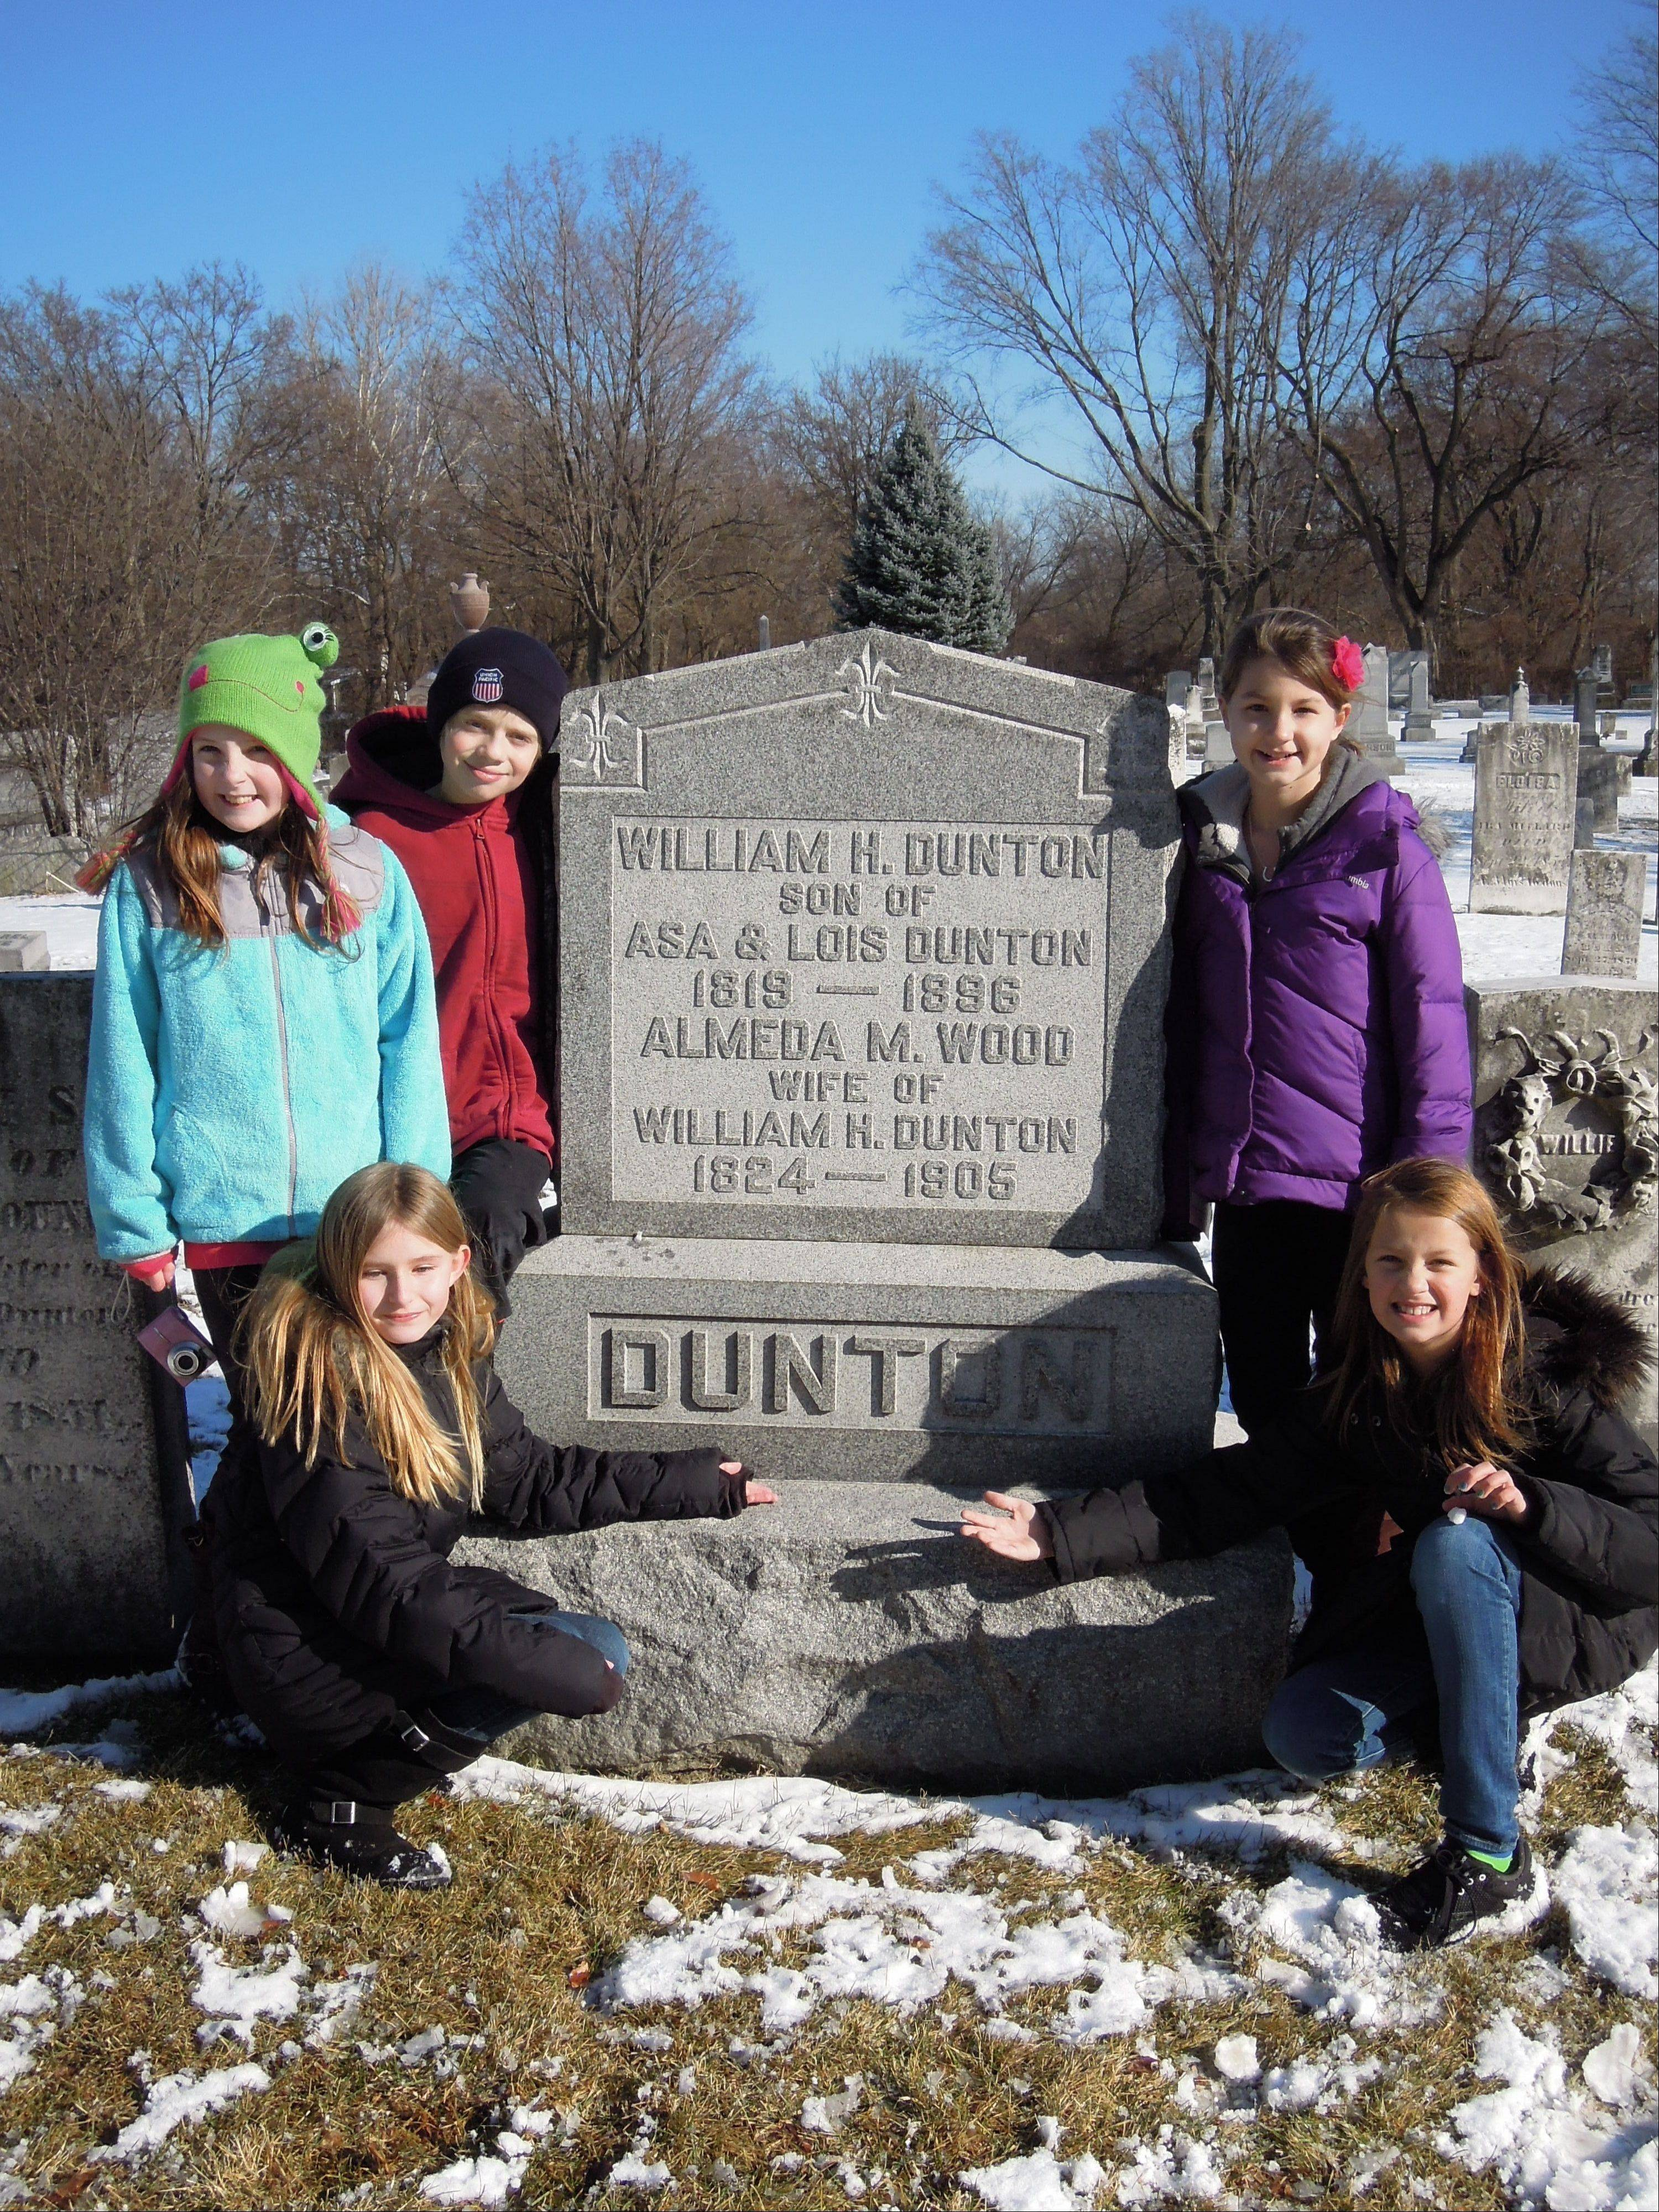 Finding the Dunton family grave are Clara Maki, kneeling on left, with Natalia Lesak and Adam Skzypkowski behind her. Alexandra La Quaglia is on the right with McKenna Kopeny behind.